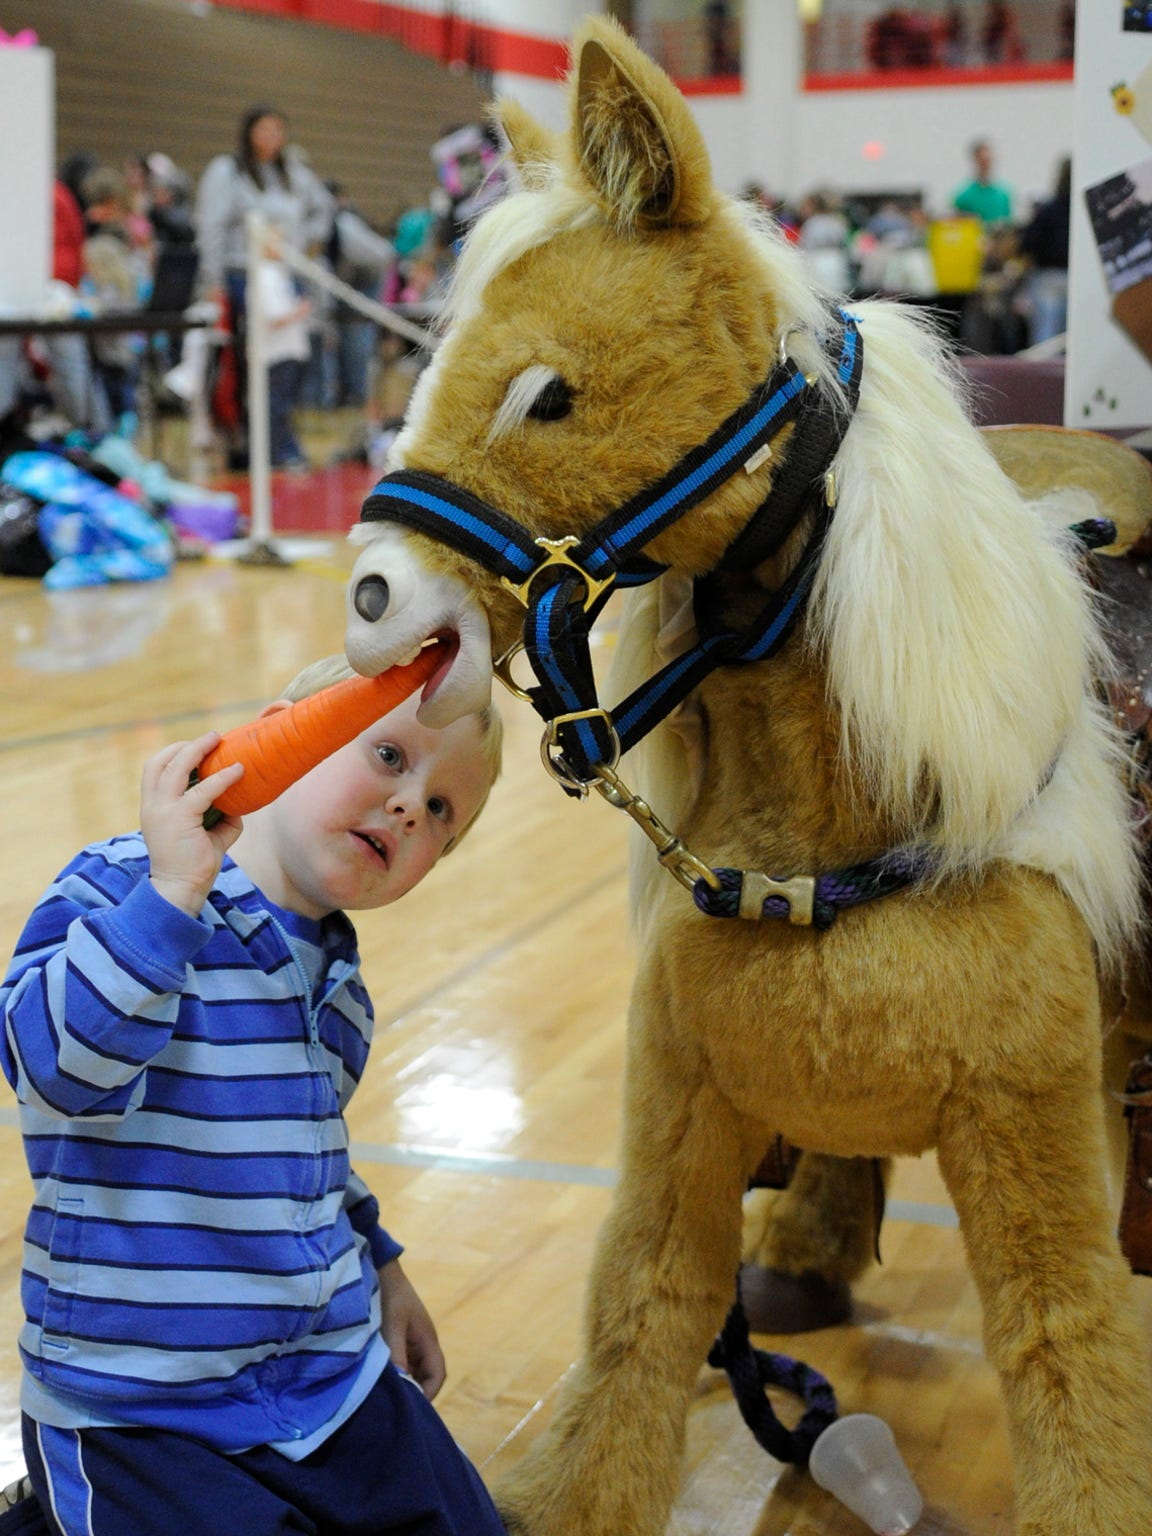 The 21st annual Wisconsin Rapids Children's Festival  will be held April 23 at Lincoln High School.